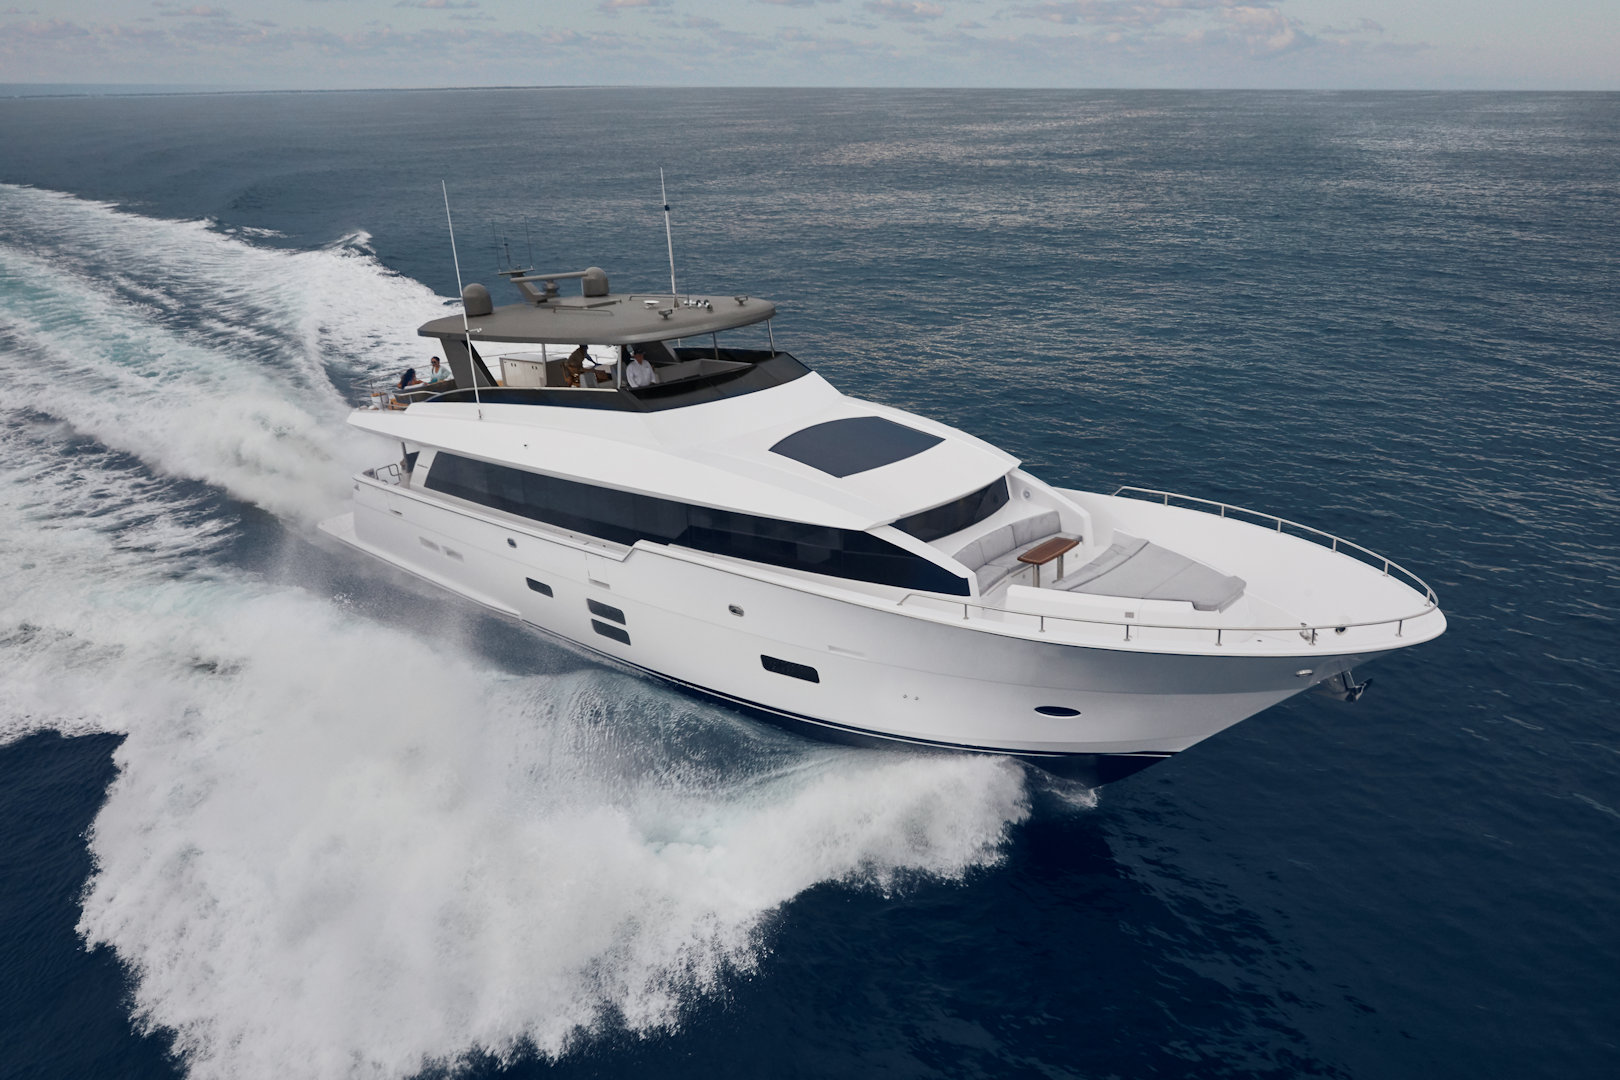 360 VR Virtual Tours of the Hatteras 90 Motor Yacht – VRCLOUD